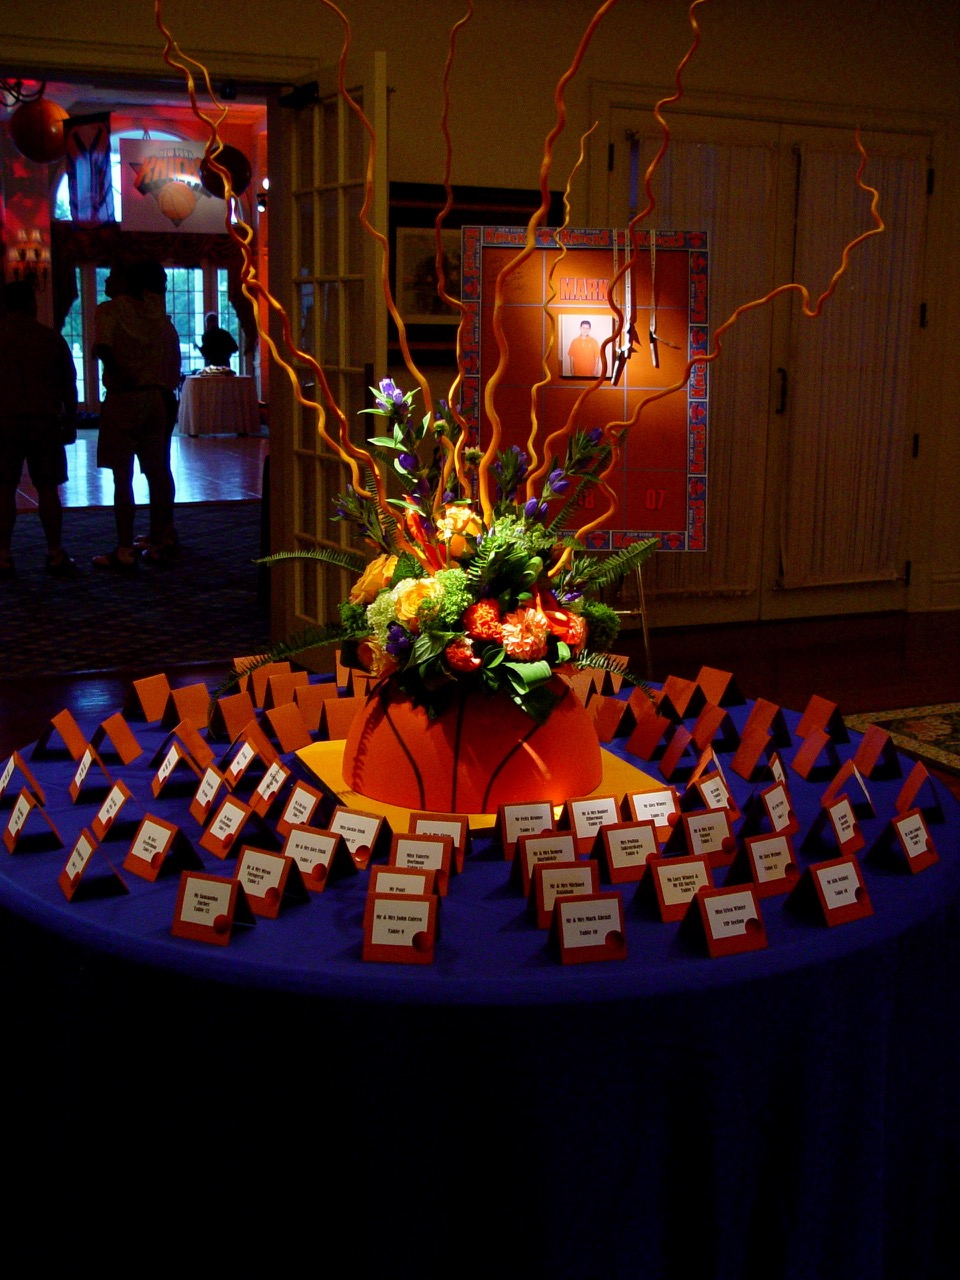 Sports Theme Centerpieces Decor and Lighting by Eggsotic Events NJ Event Design and Decor Rental  - 7.jpg